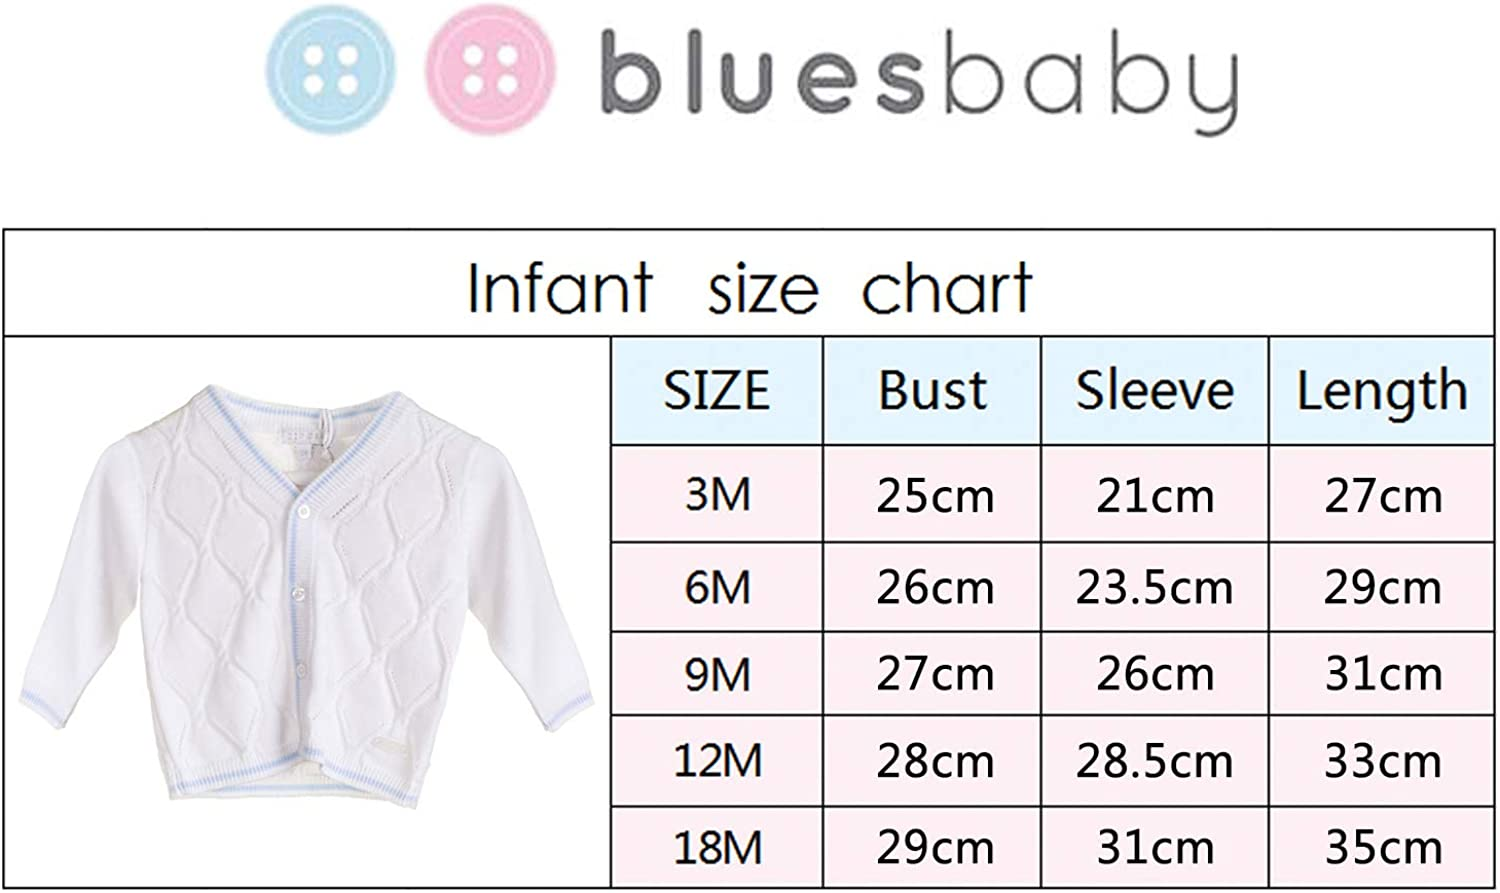 One Piece BLUES BABY Cardigan for Baby Boy 100/% Acrylic with Argyle Detail White with Blue